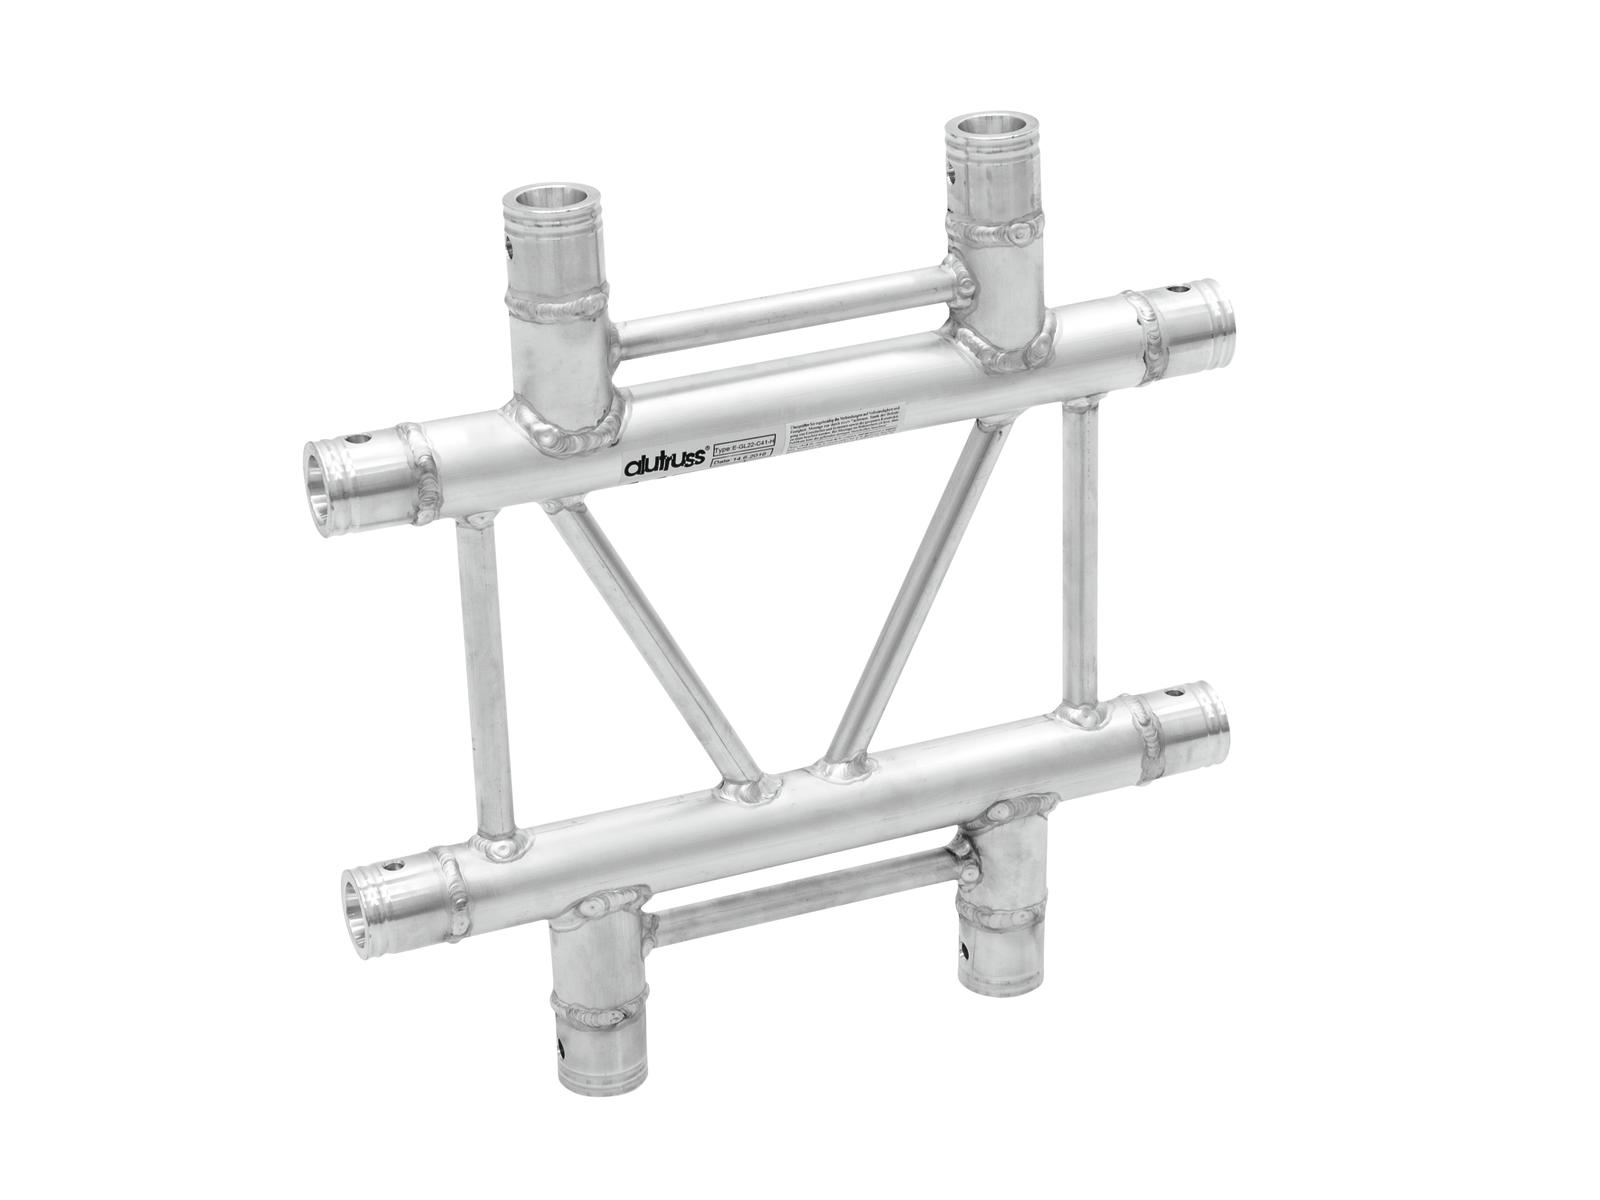 ALUTRUSS BILOCK E-GL22 C41-H 4-Via Croce